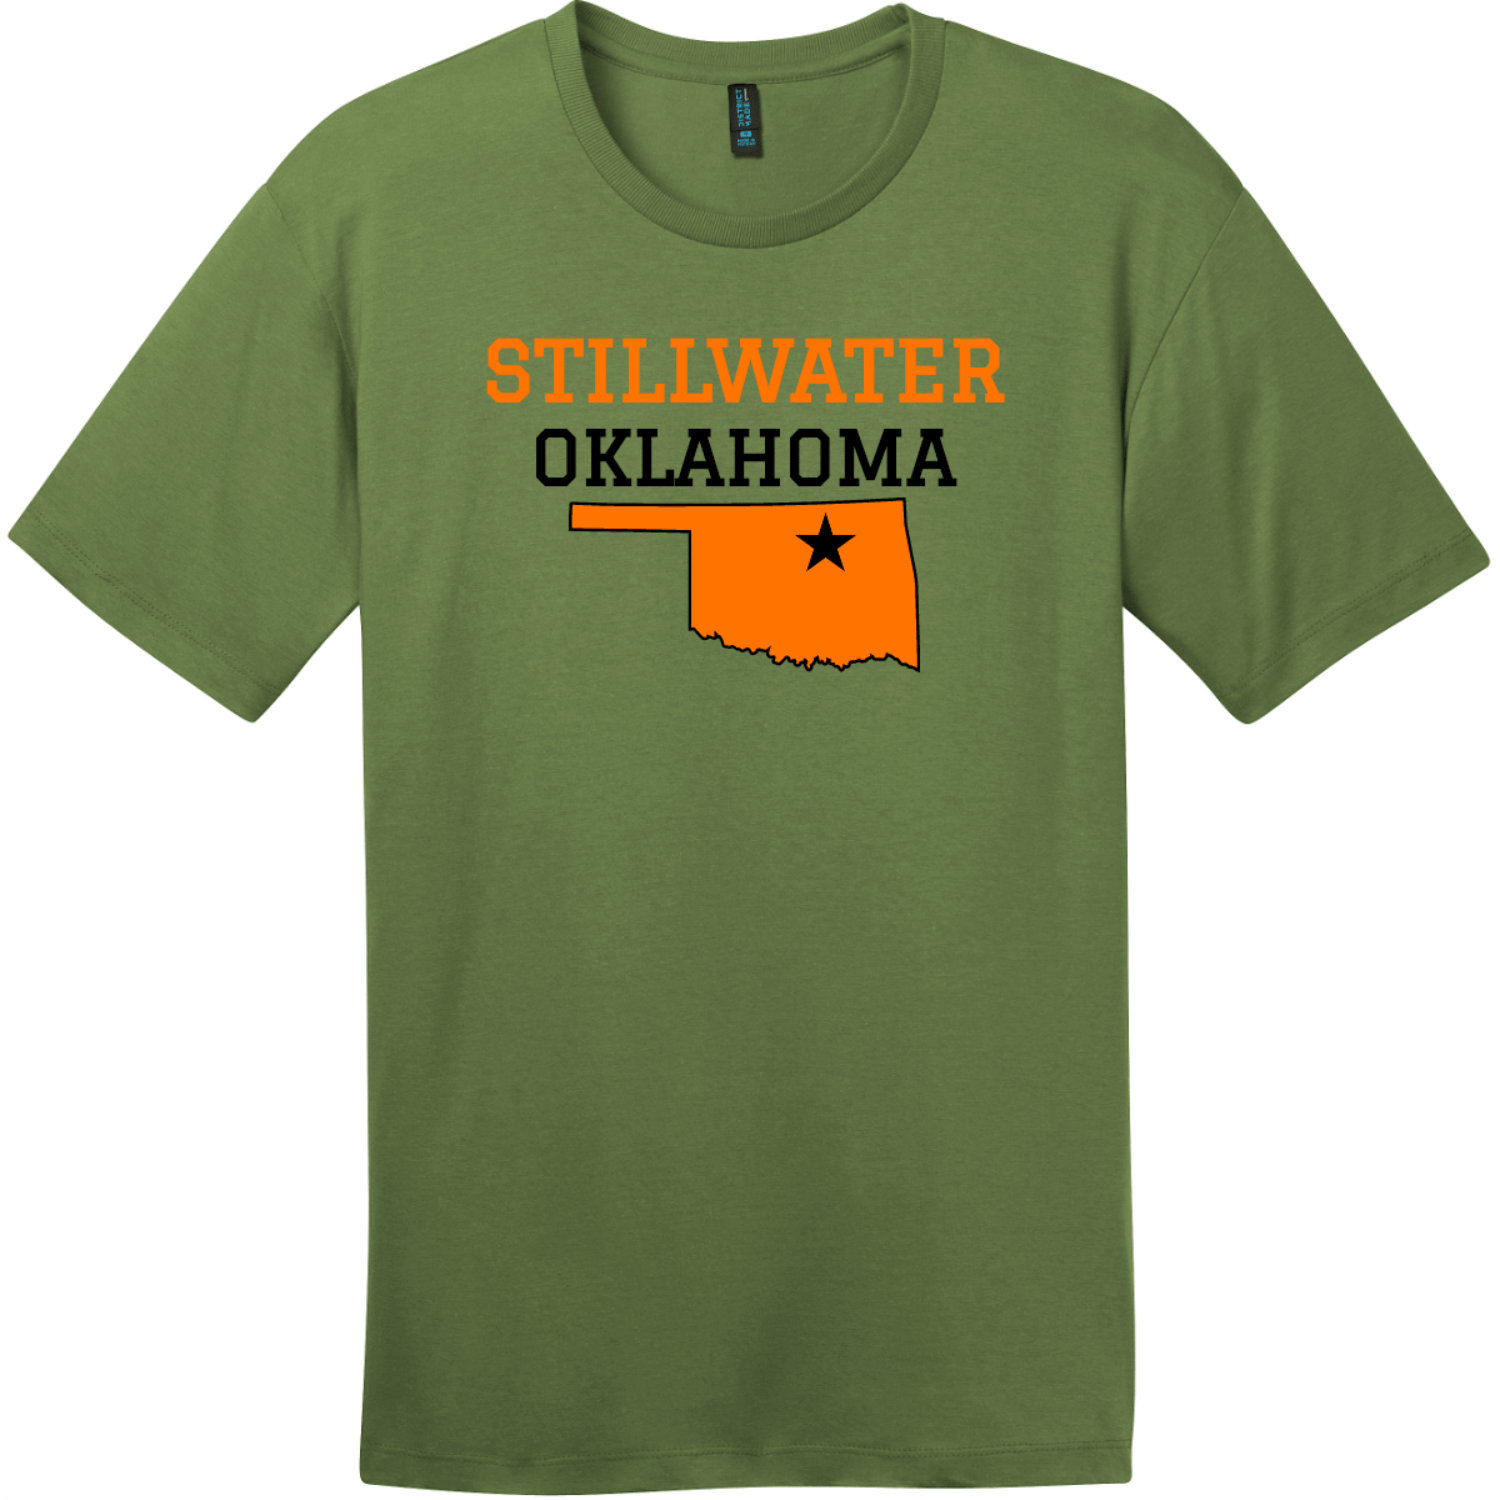 Stillwater Oklahoma T-Shirt Fresh Fatigue District Perfect Weight Tee DT104